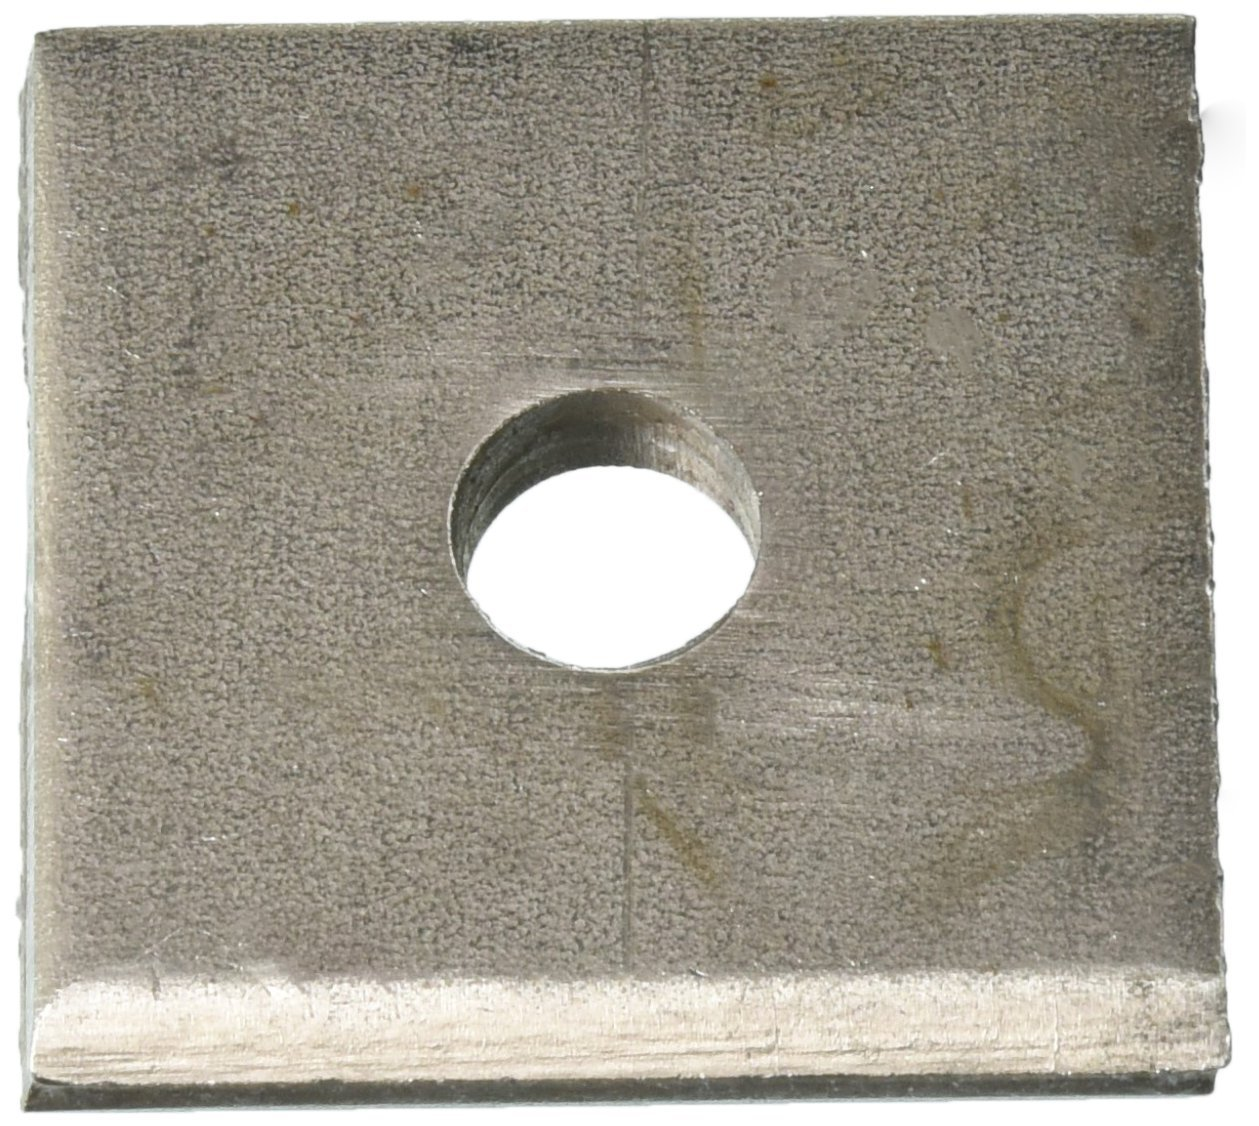 VERSABAR VF-1101-3/8SS6 Square Washer 3/8'' Clearance Stainless Steel 316